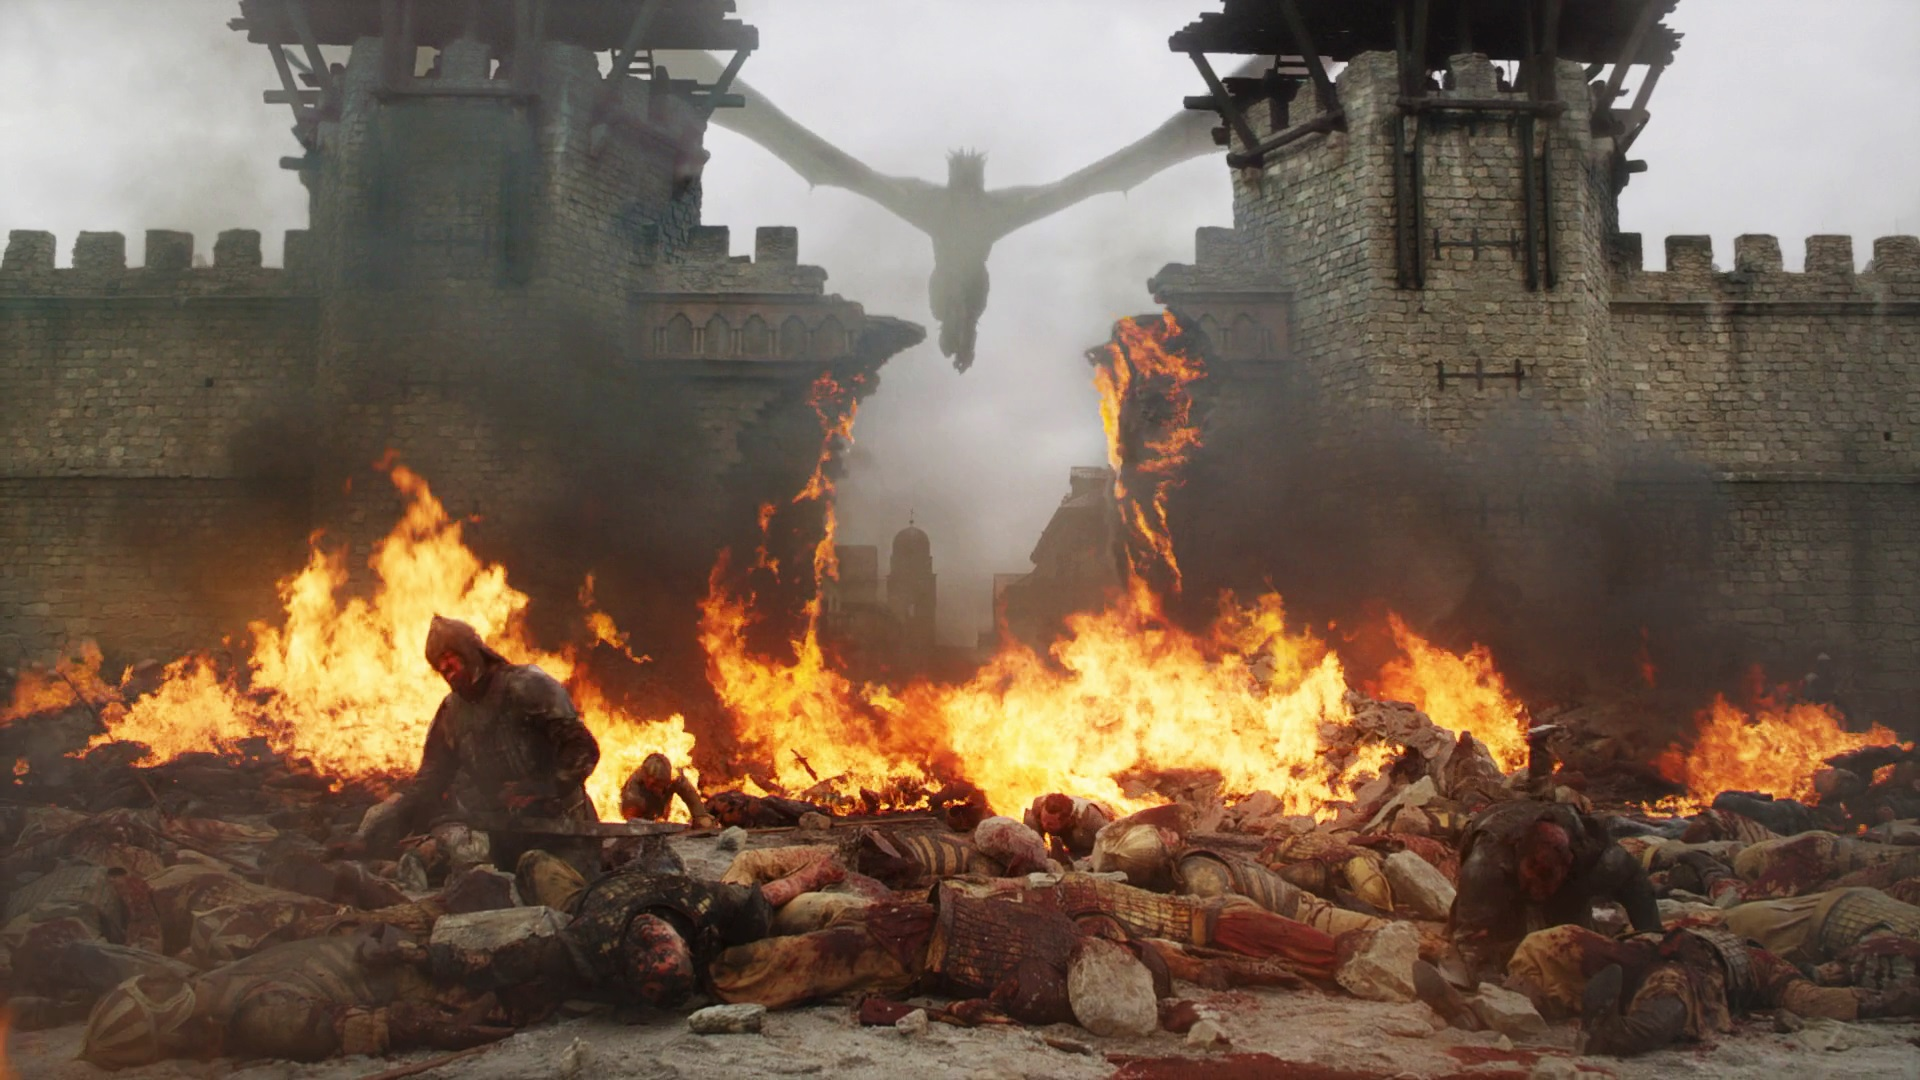 King's Landing Battle 805 Season 8 The Bells Daenerys Dany Targaryen Drogon Gates Golden Company